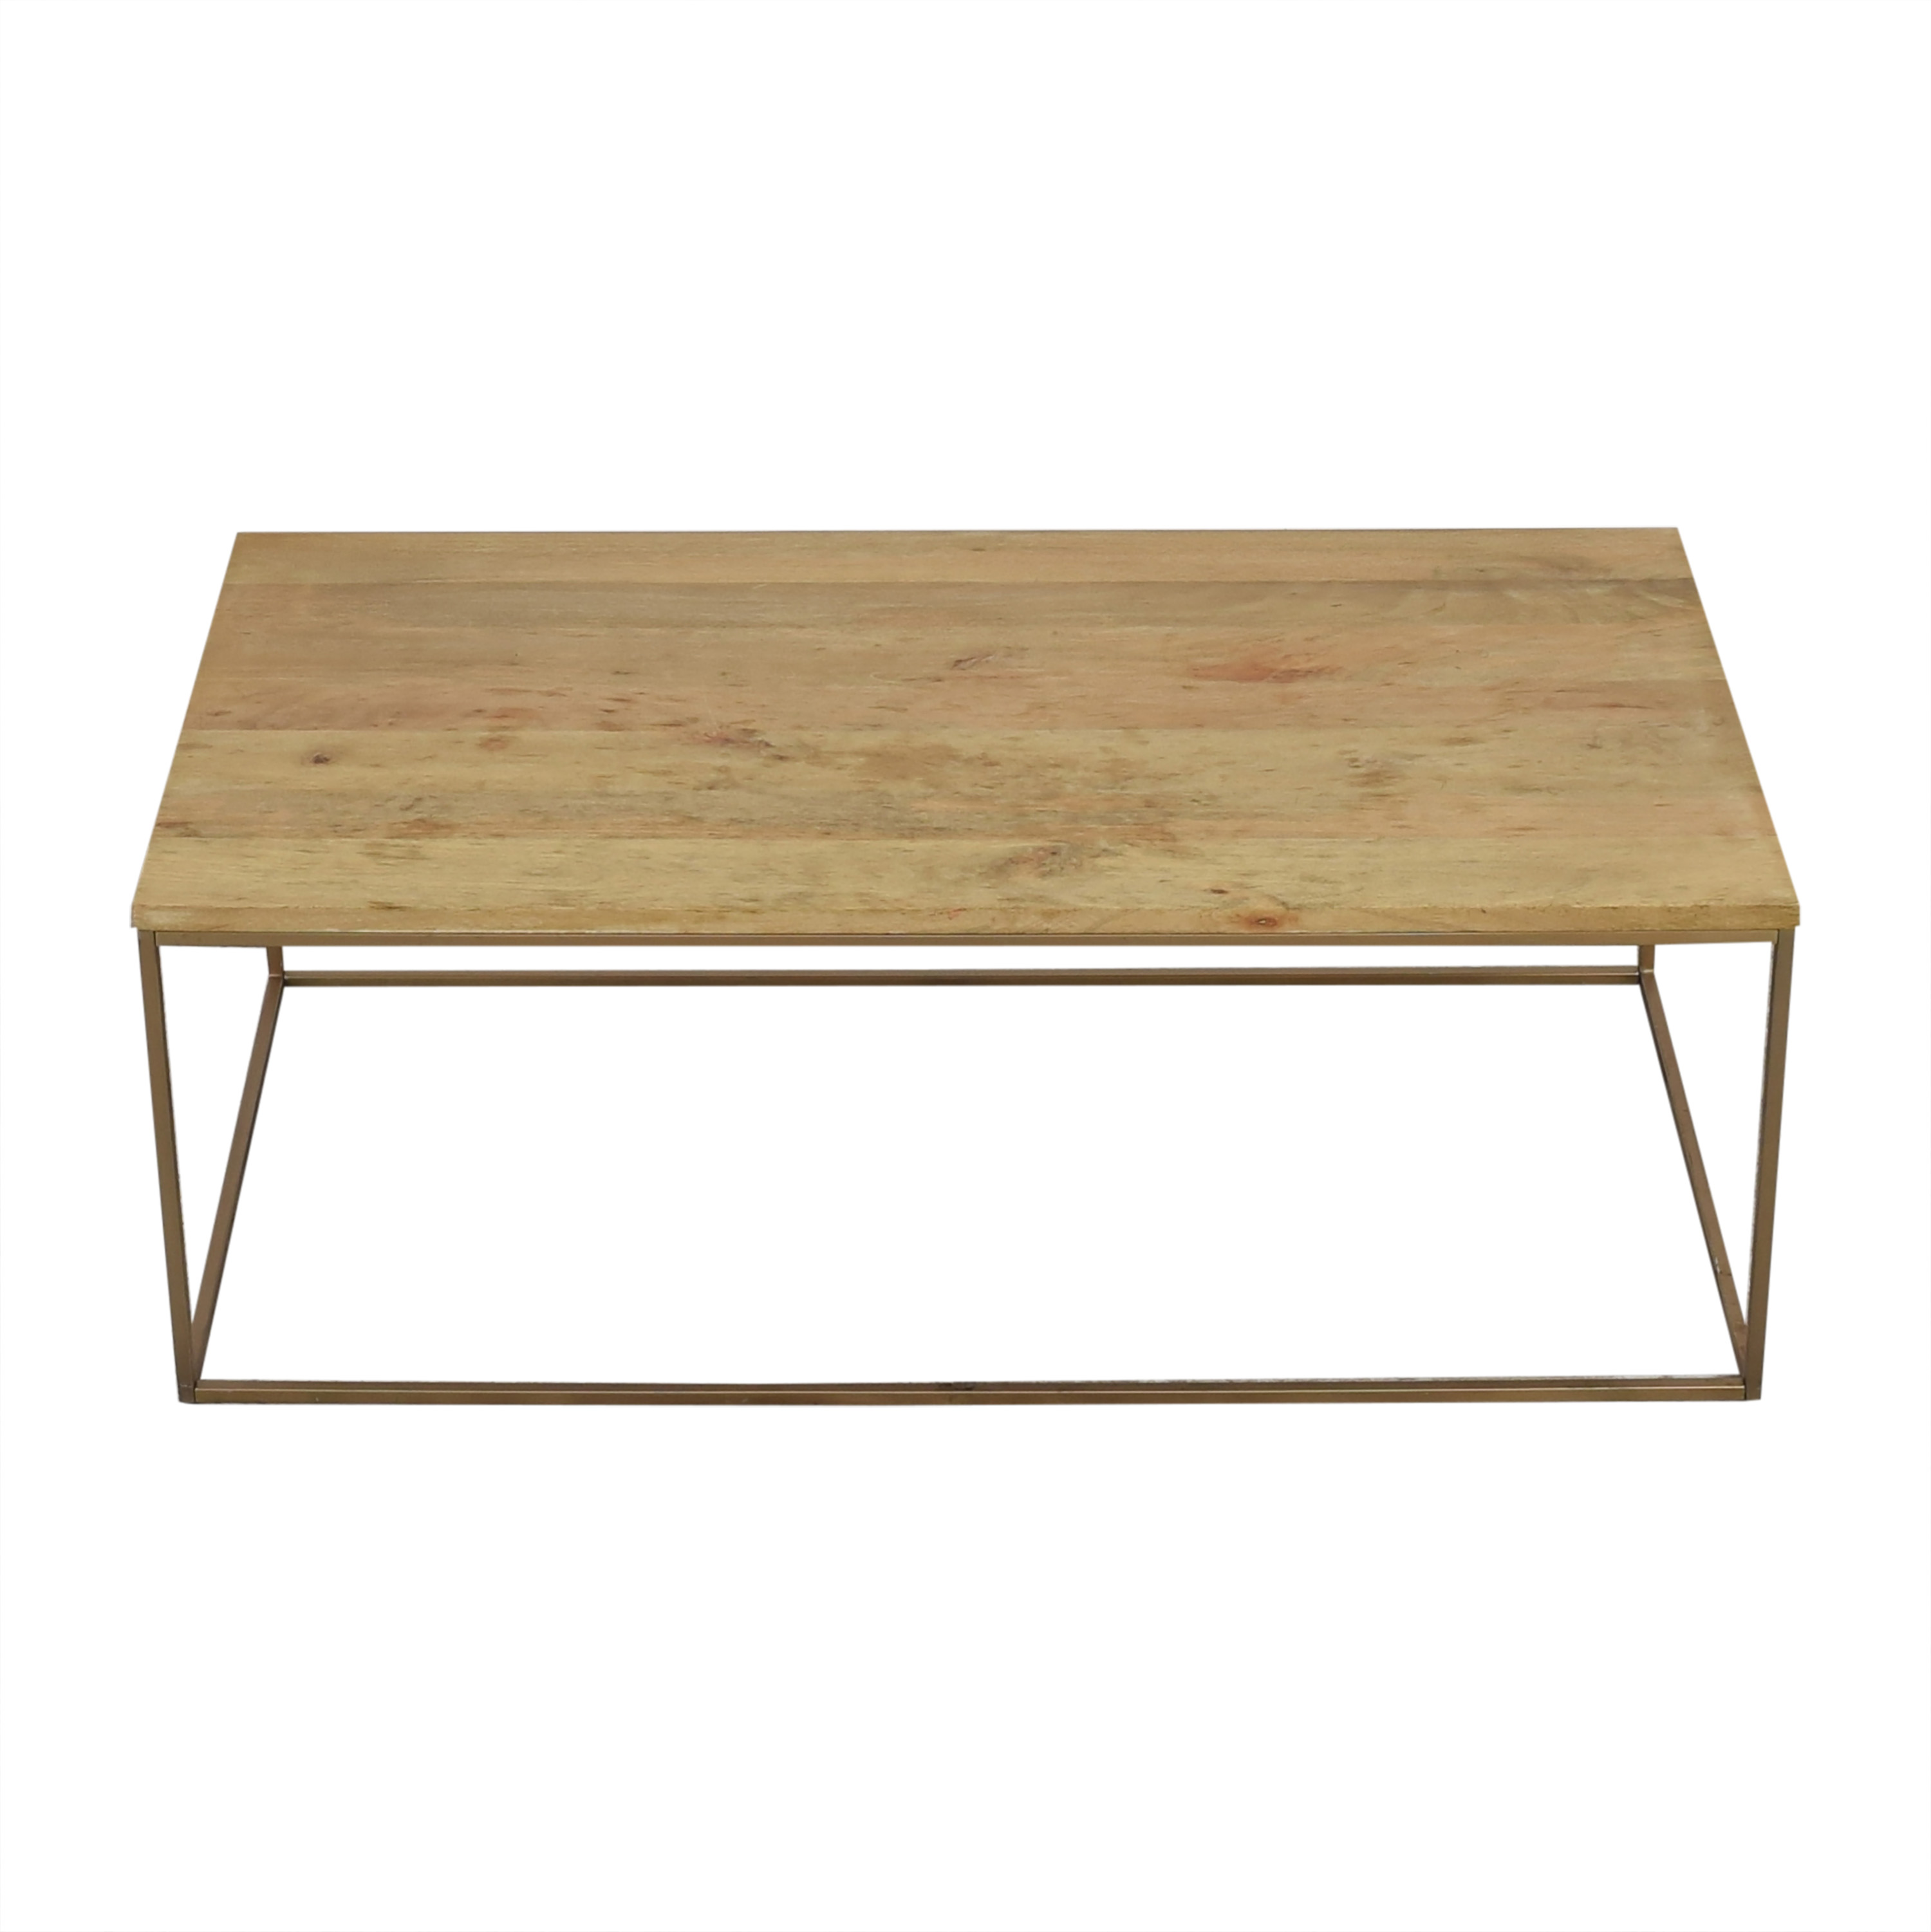 West Elm West Elm Streamline Coffee Table second hand